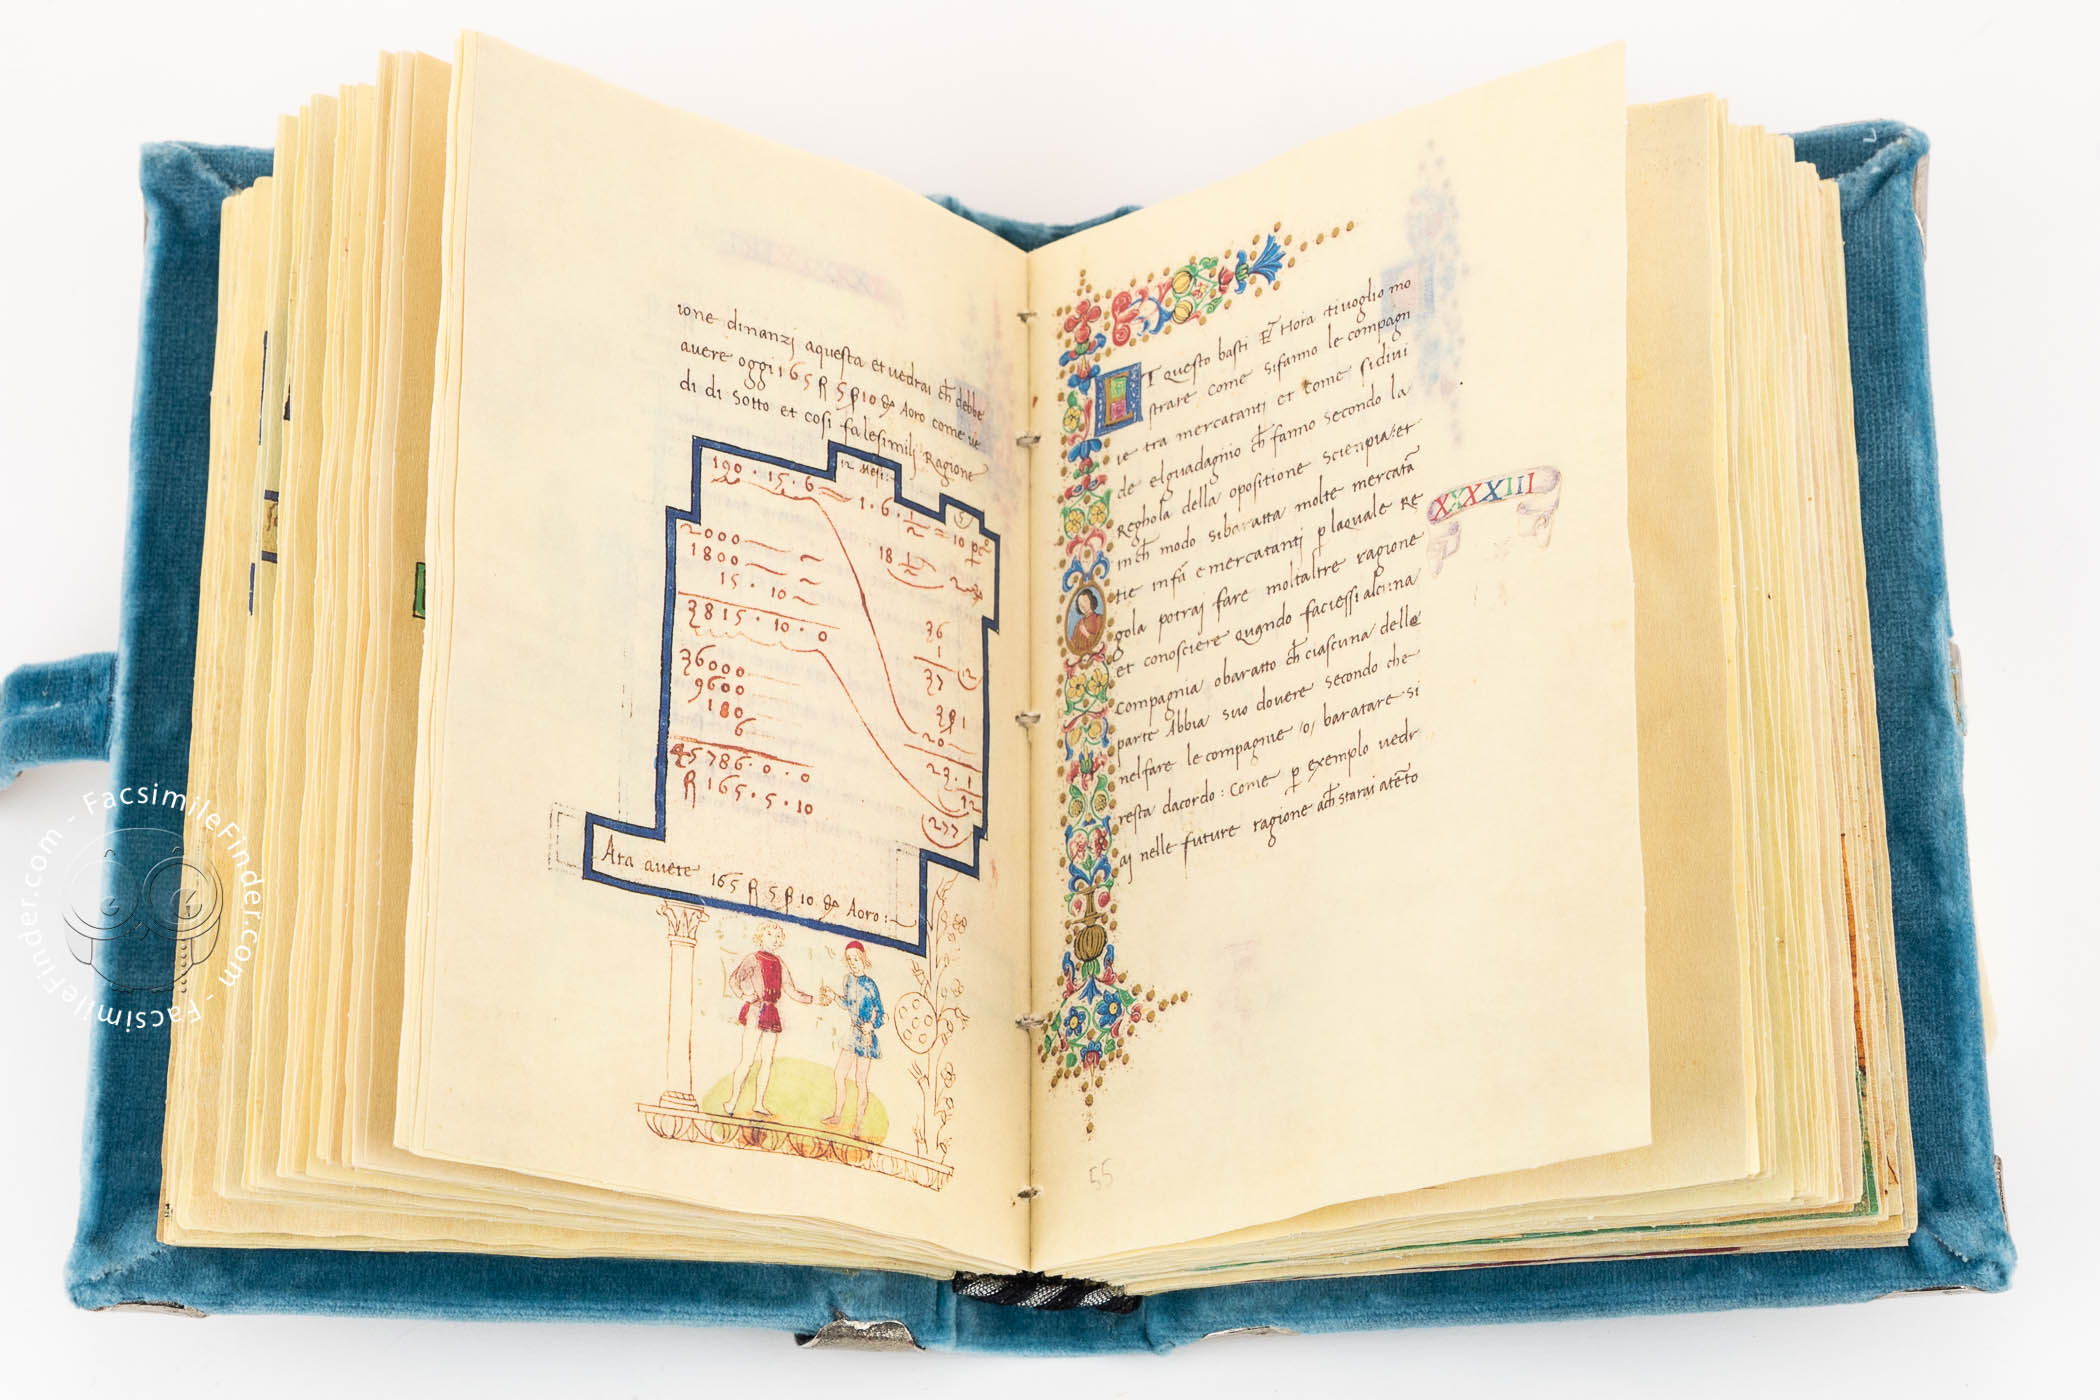 Treatise on Arithmetic of Lorenzo the Magnificent